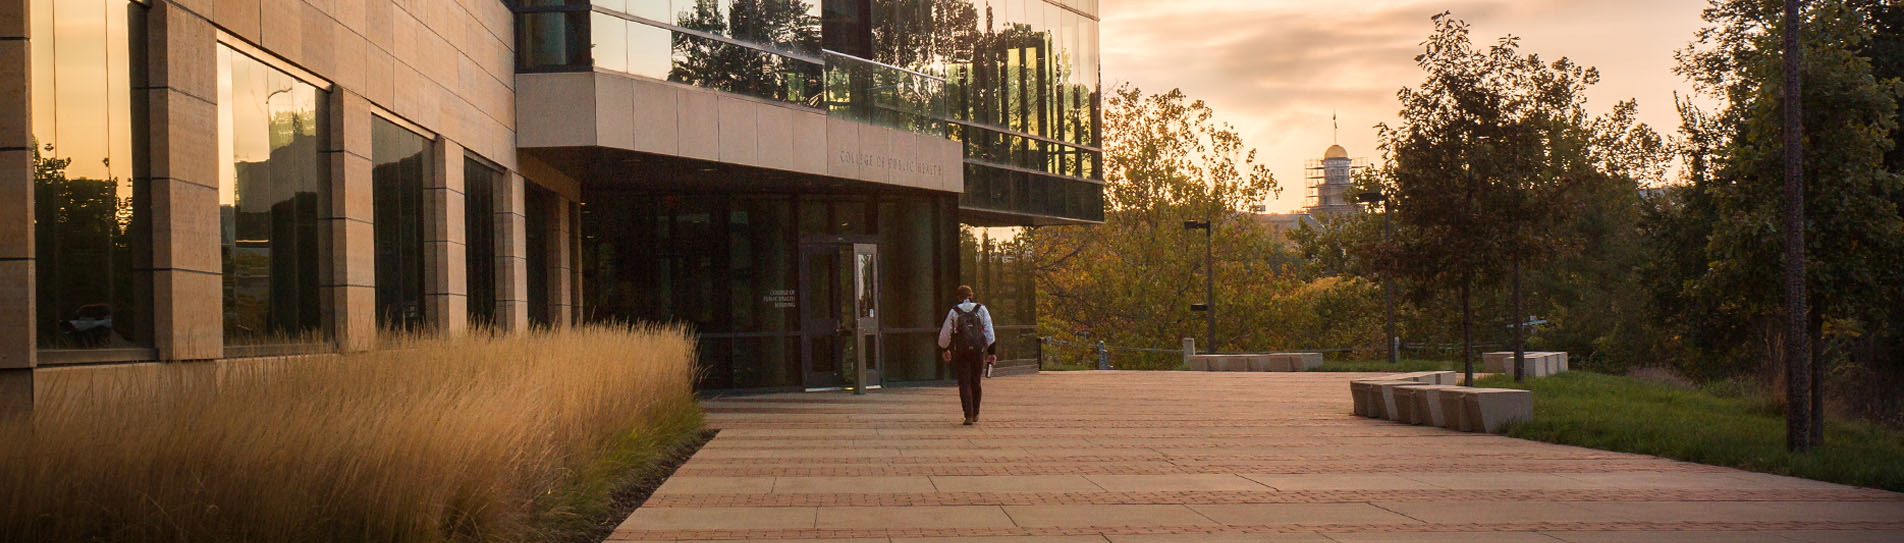 Student walking into the College of Public Health Building at dawn.